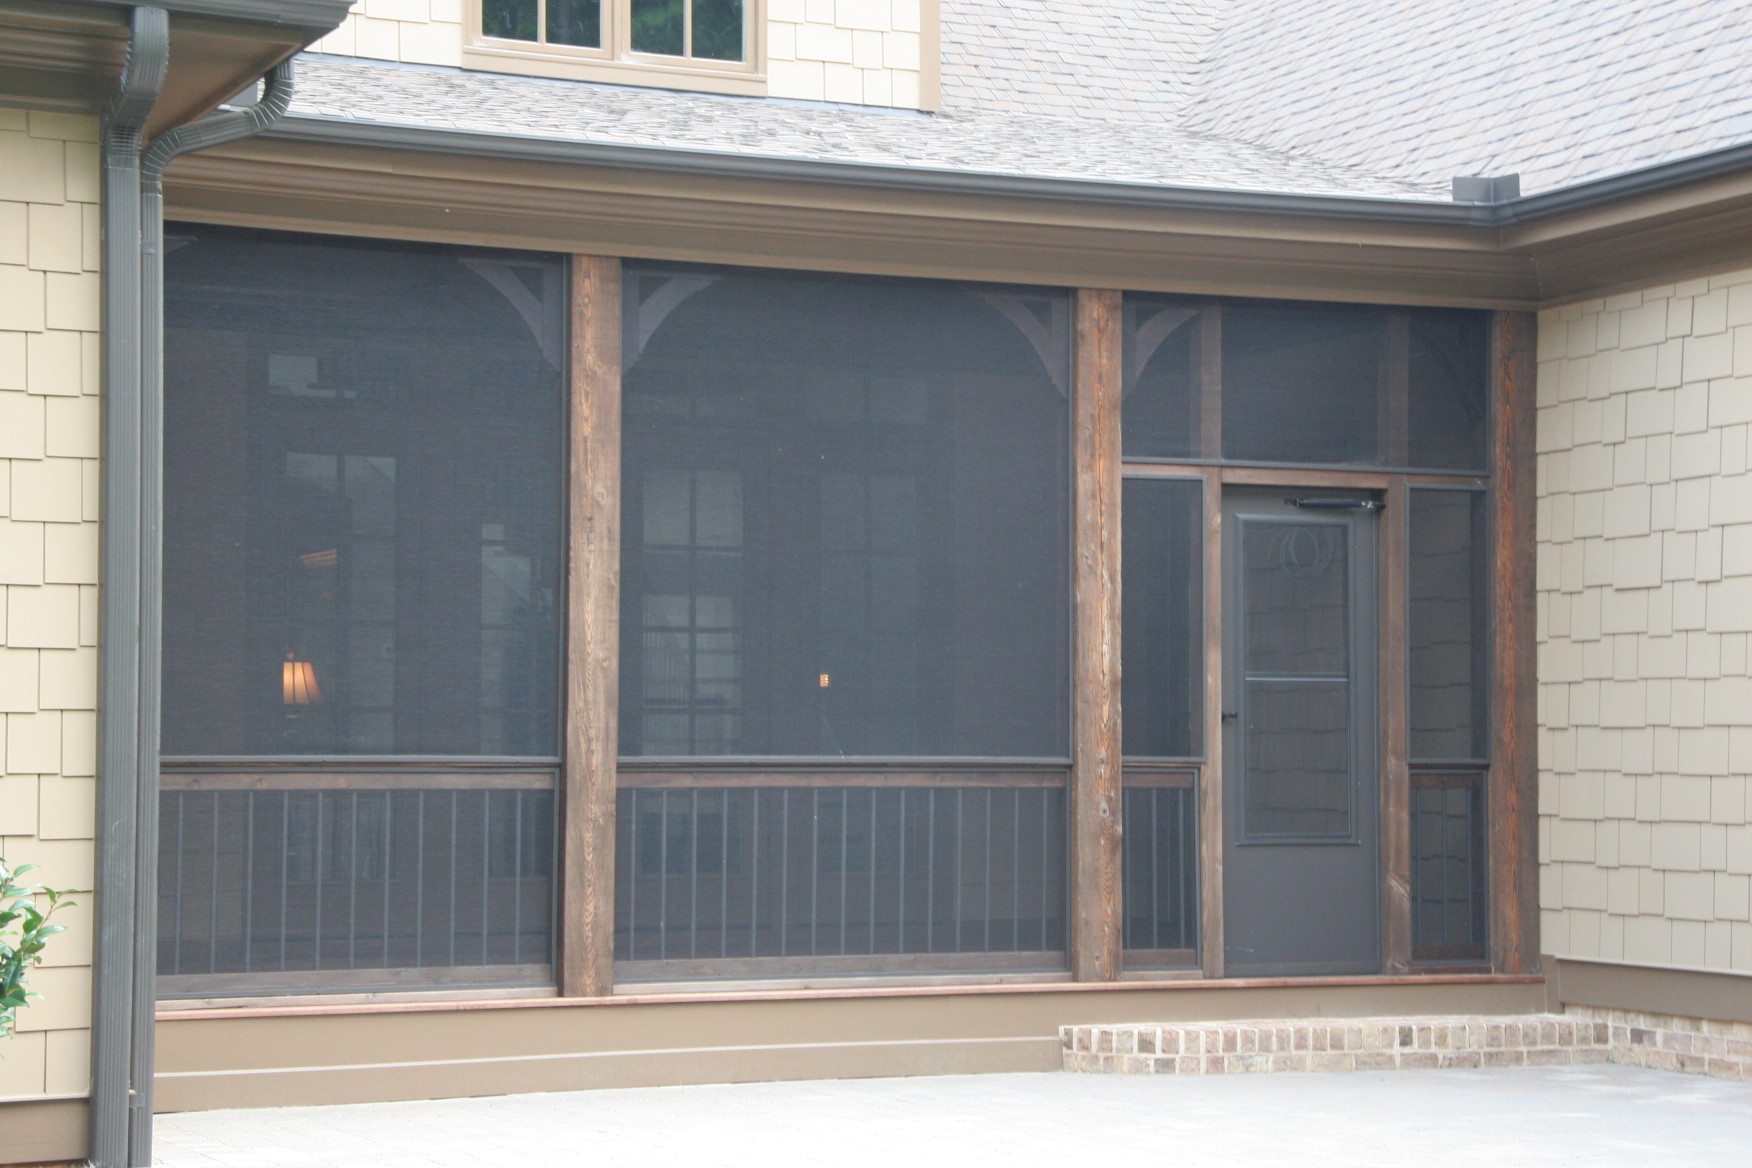 The wood posts and wood brackets and wood railing are a great addition to this screened porch